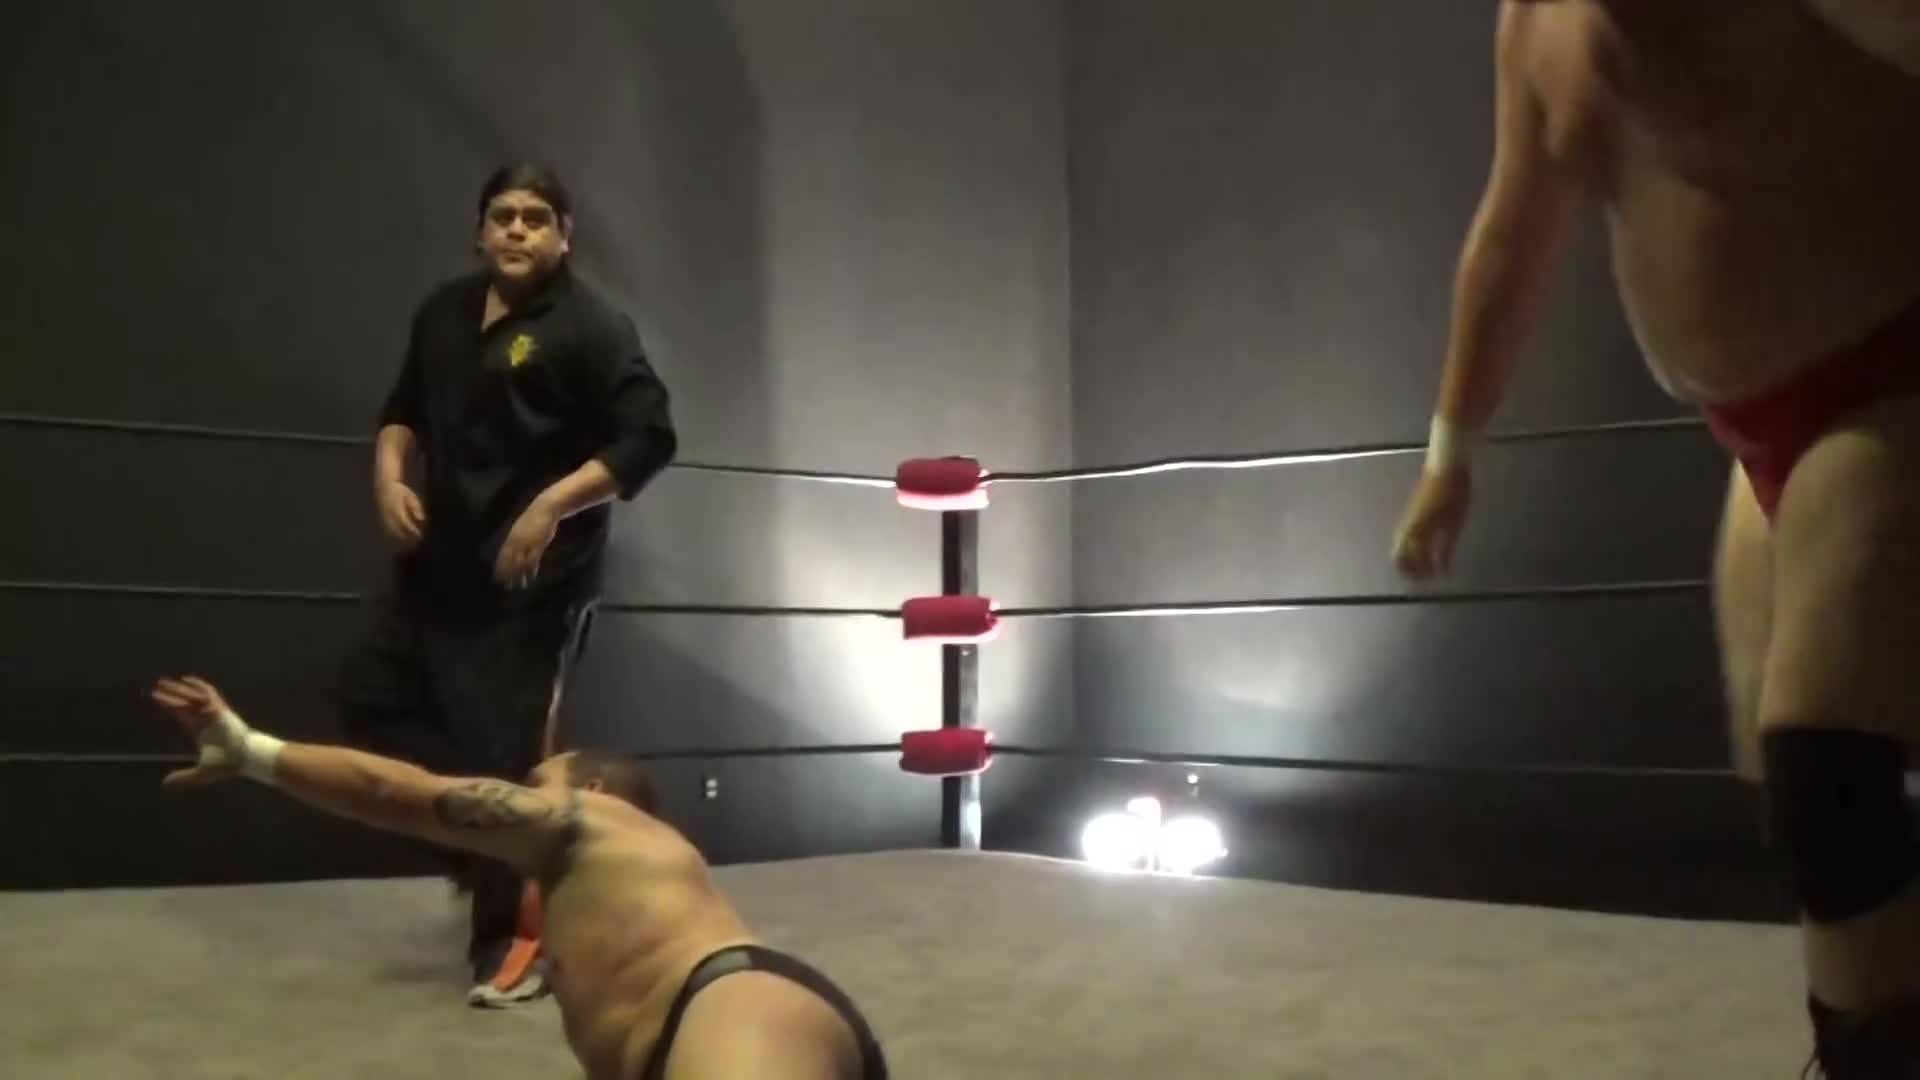 Cheap shot, Ref, Ricardo Rodriguez, Tag team, wrestlers, Cheap shot GIFs